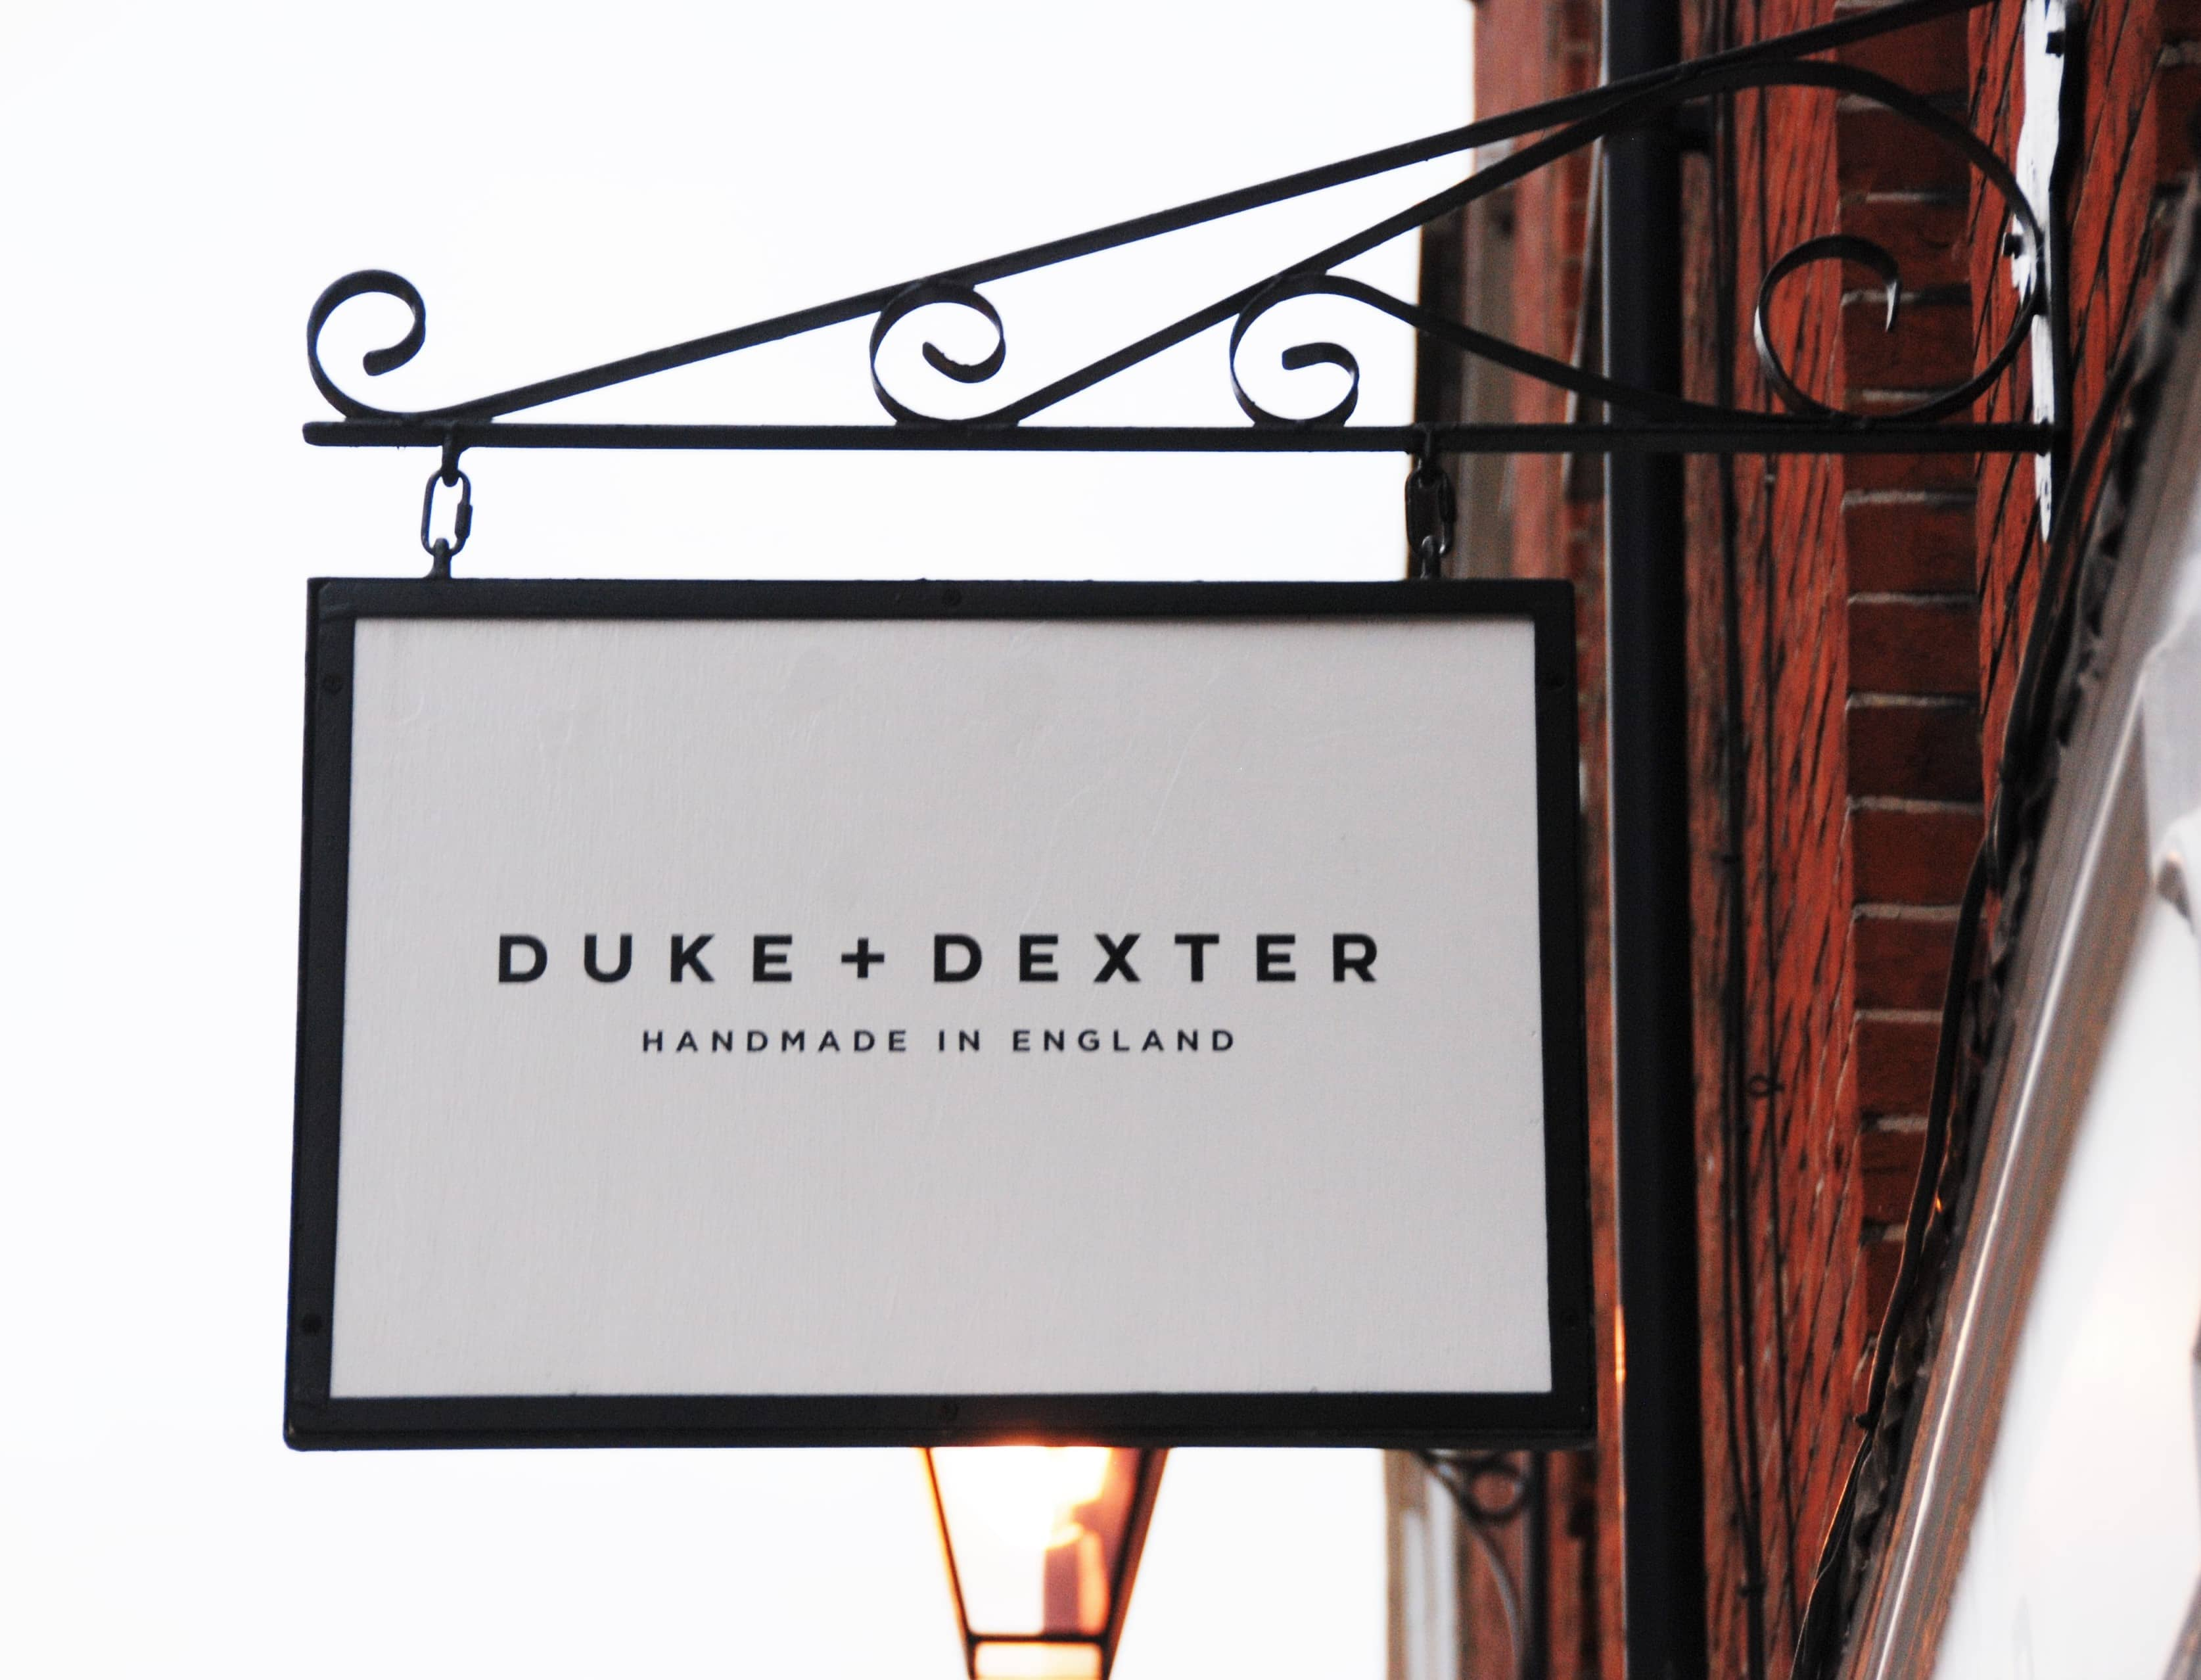 Duke & Dexter Mens Premium Loafers Duke Dexter Store Earlham Street Covent Garden Seven Dials Sign